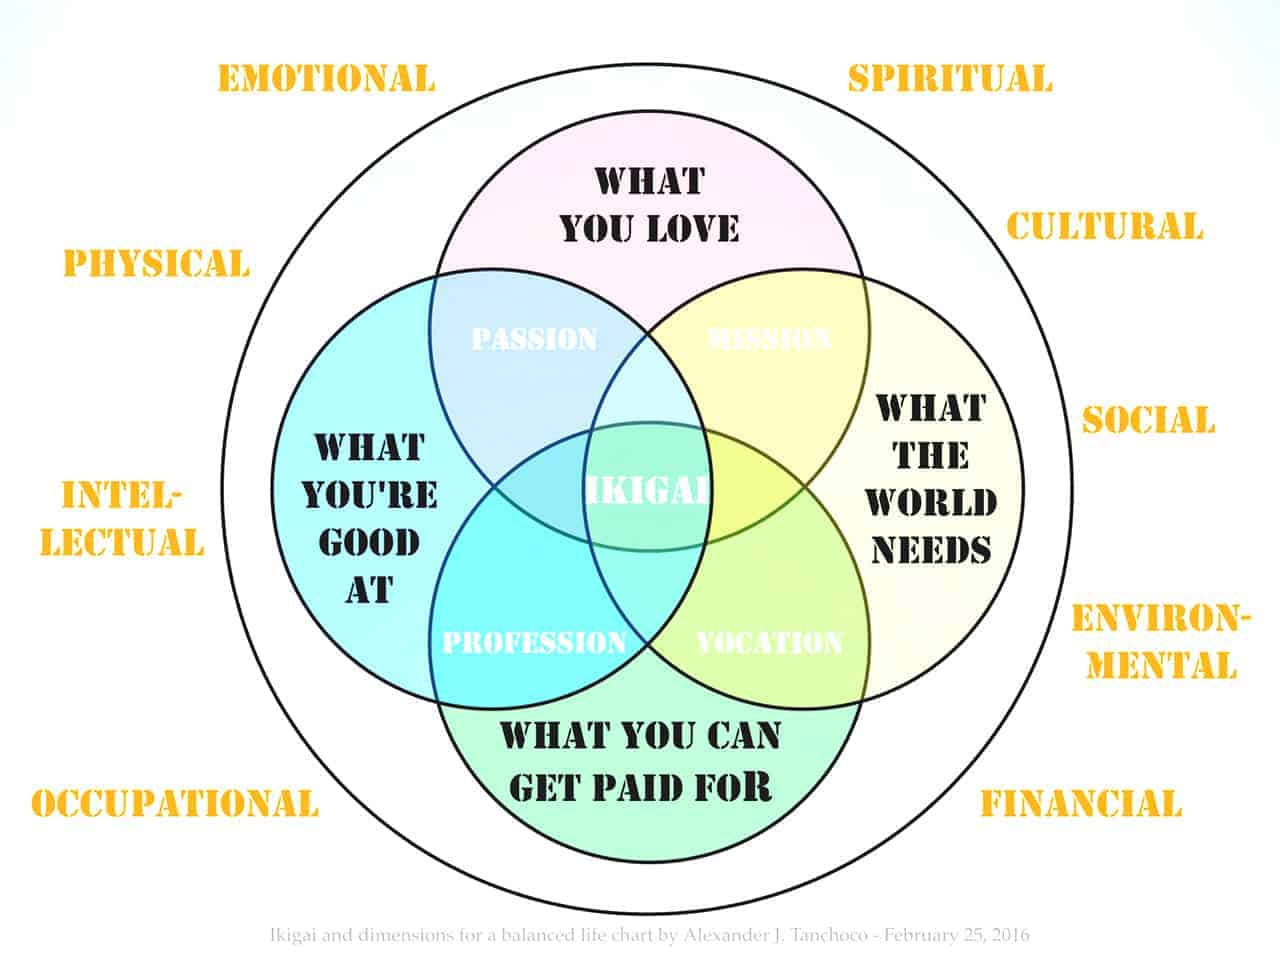 Ikigai - Dimensions For Balanced Life by Alex Tanchoco